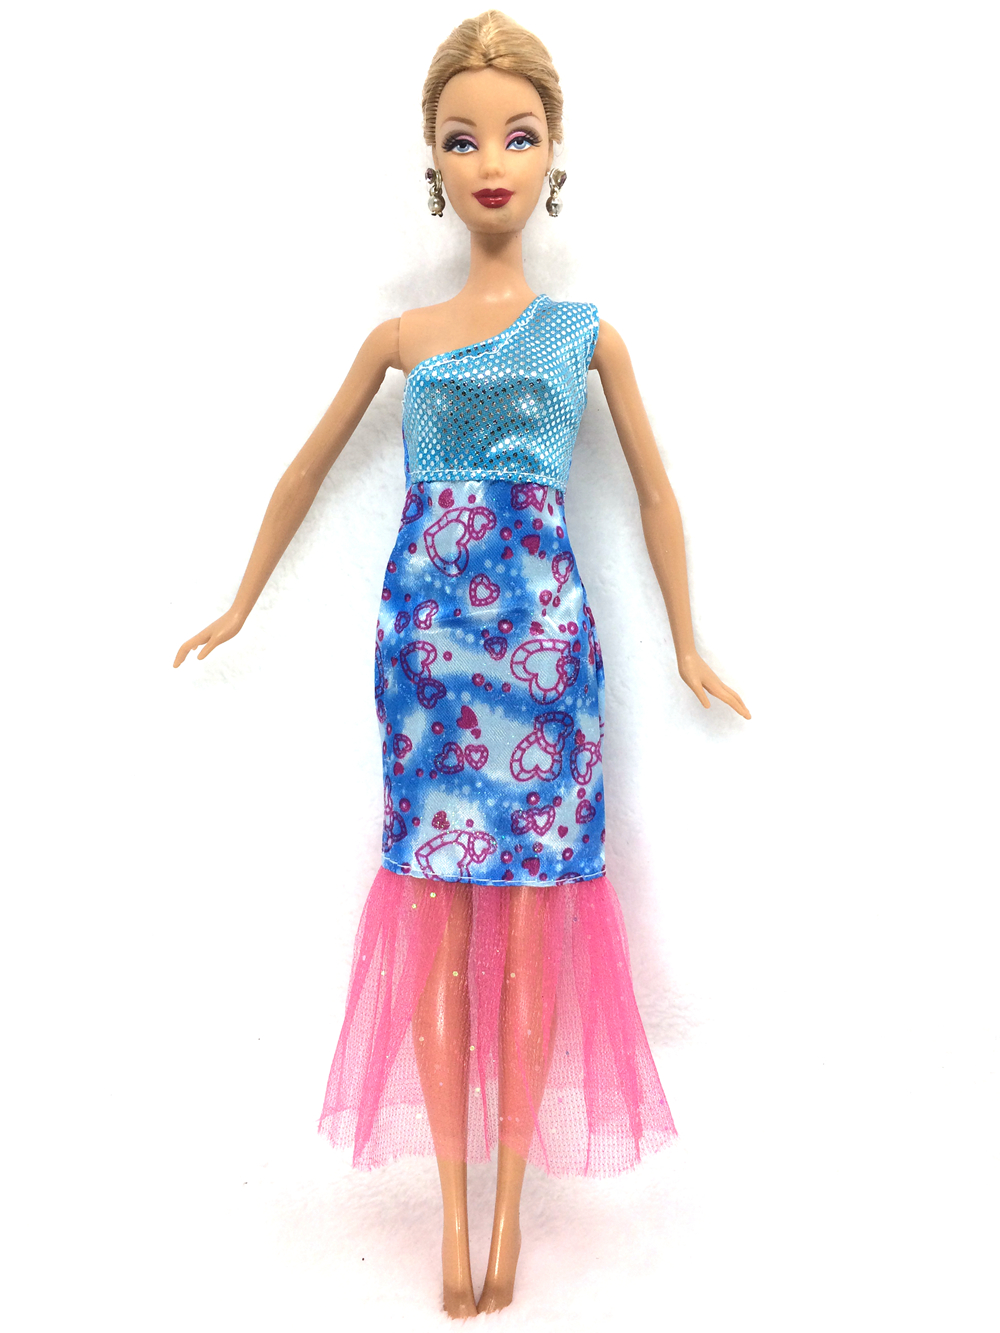 NK One Set Authentic Doll Garments Lovely Celebration Outfit Style Gown For Barbie Authentic Doll Pink Bow Gauze Child Toys B025